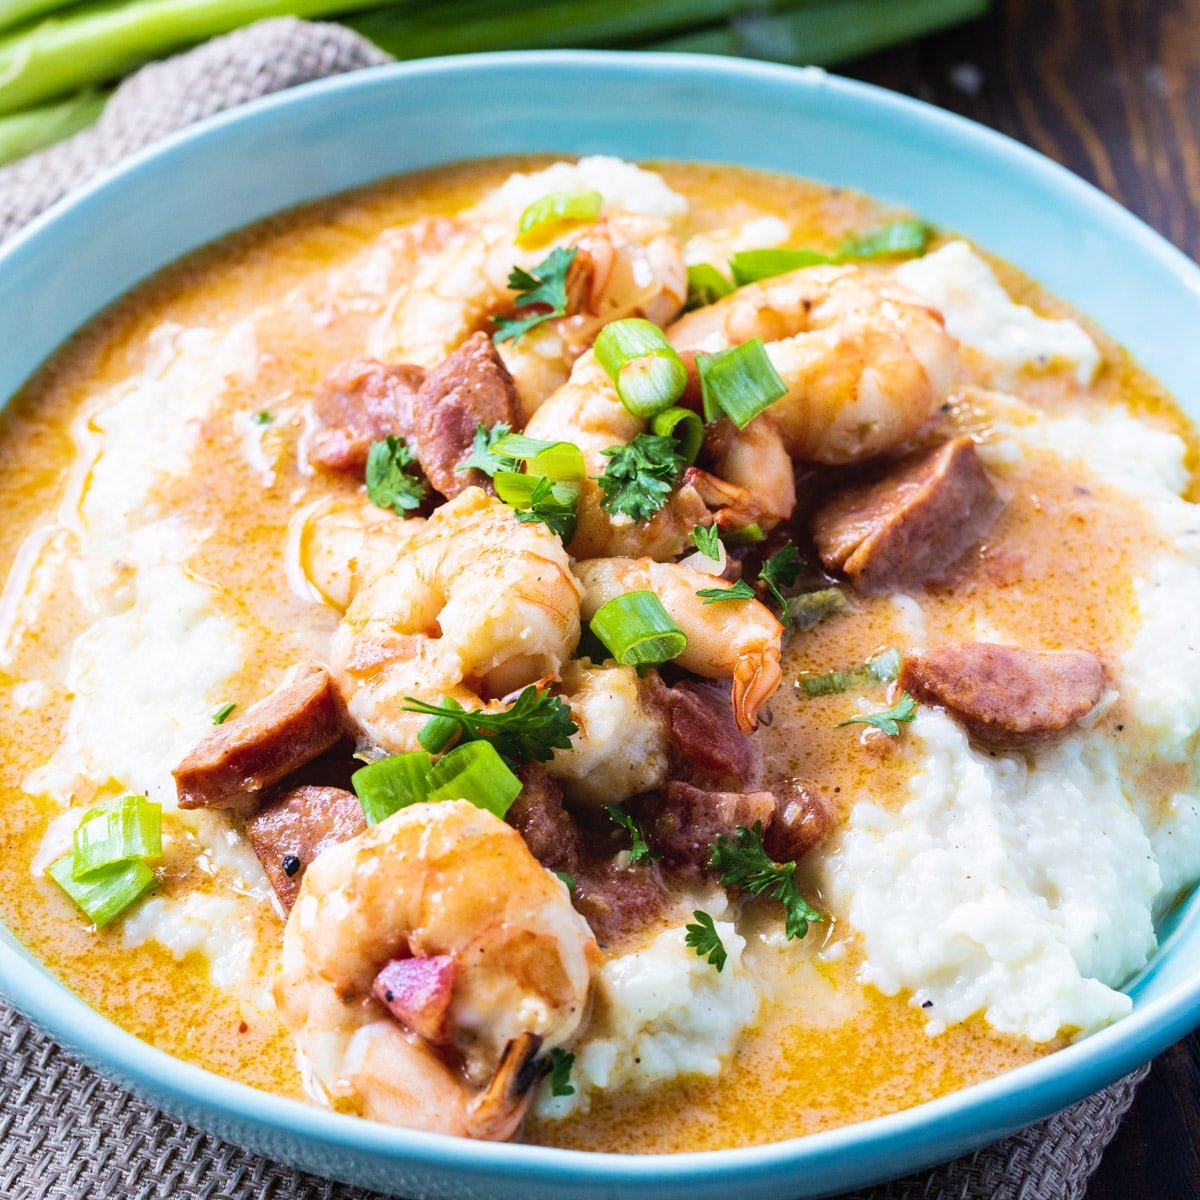 Smothered Shrimp and Parmesan Grits in a blue bowl.